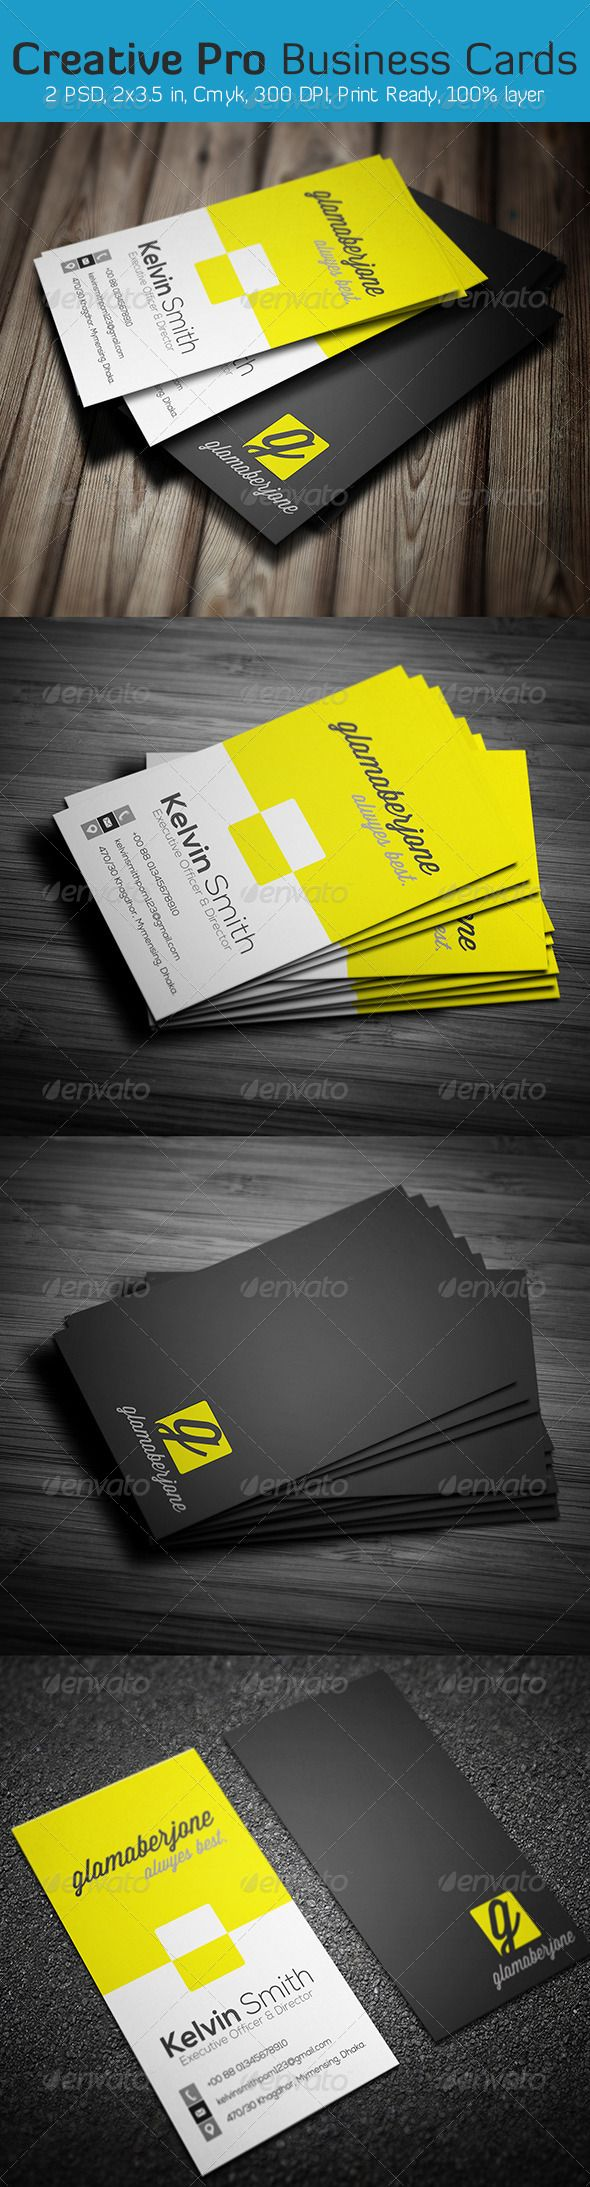 Best Print Templates Images On Pinterest Print Templates - 2 x 35 business card template